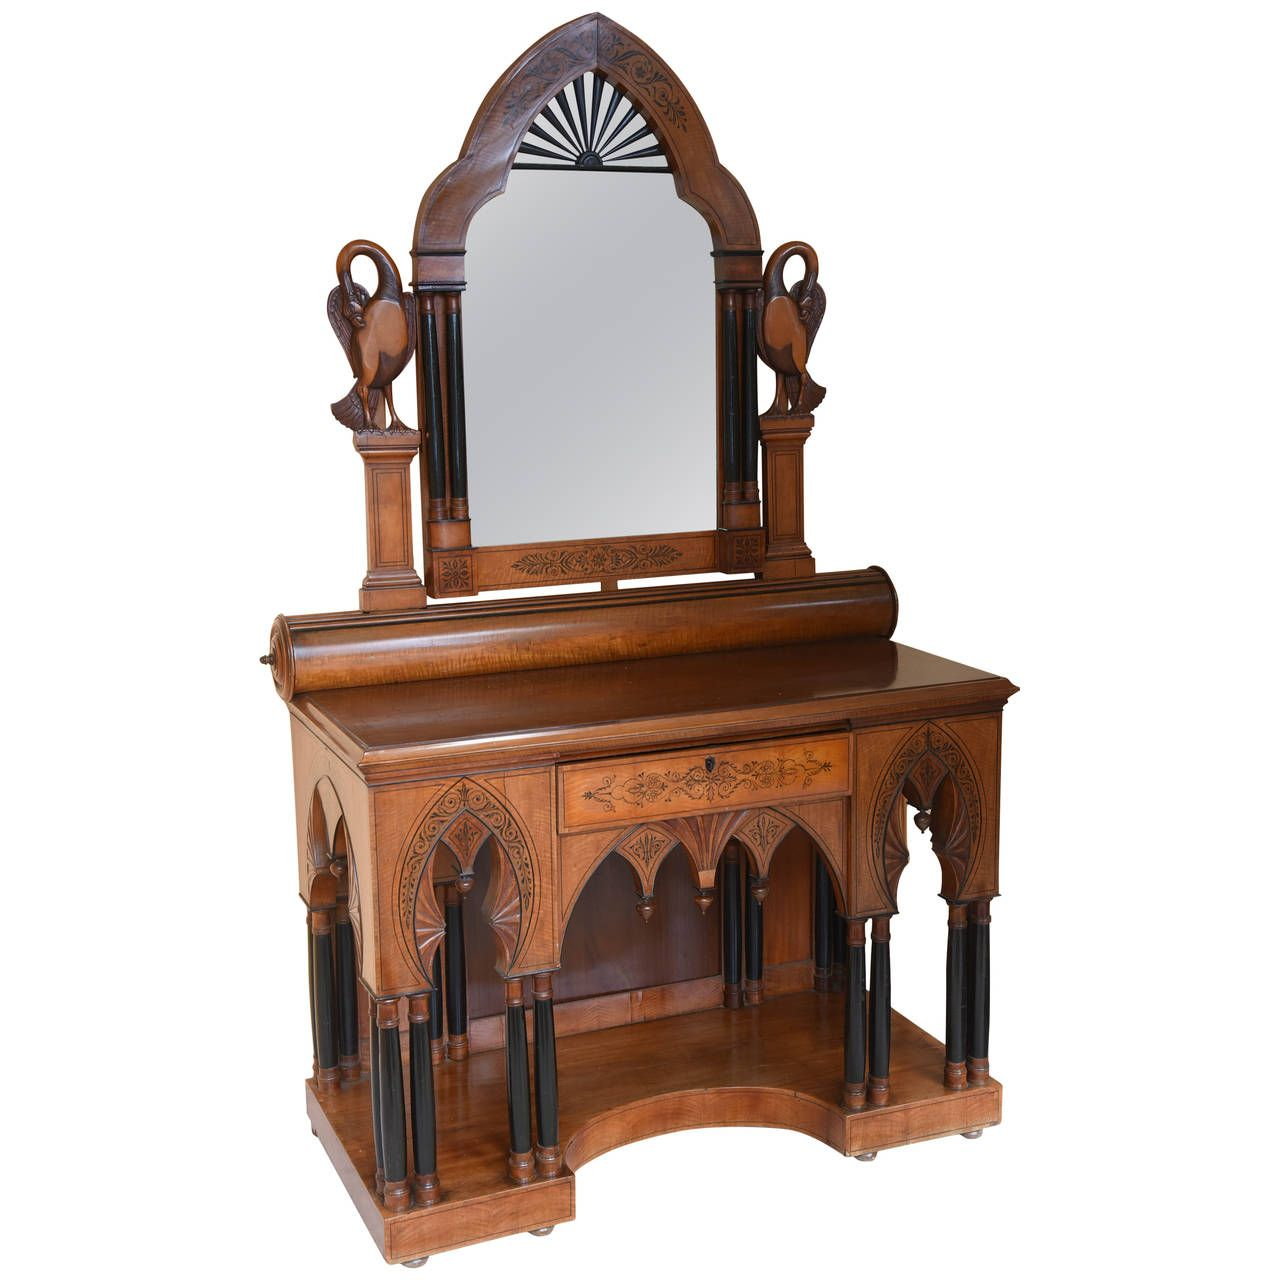 Best 19Th Century Satinwood Vanity From A Unique Collection 400 x 300